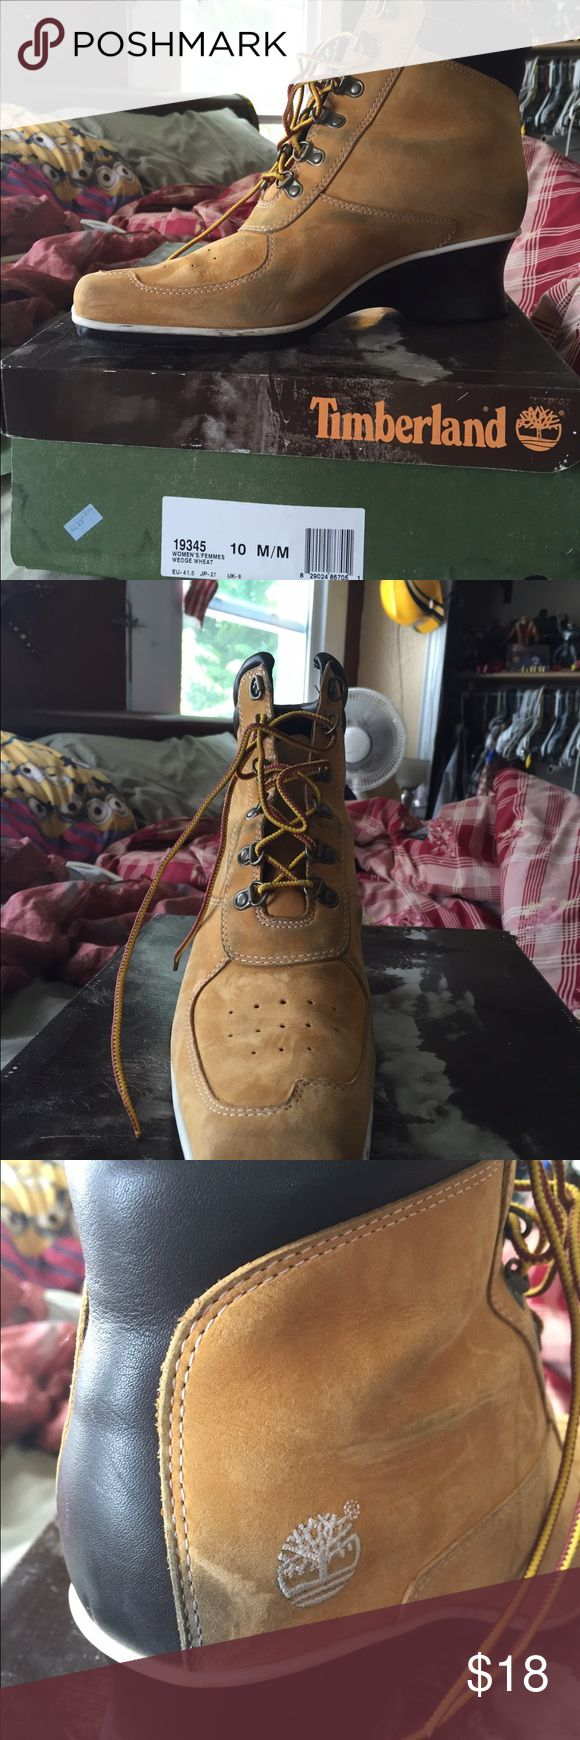 Ladies timberland boots Ladies boots show some wear, still have lots of life left Timberland Shoes Lace Up Boots